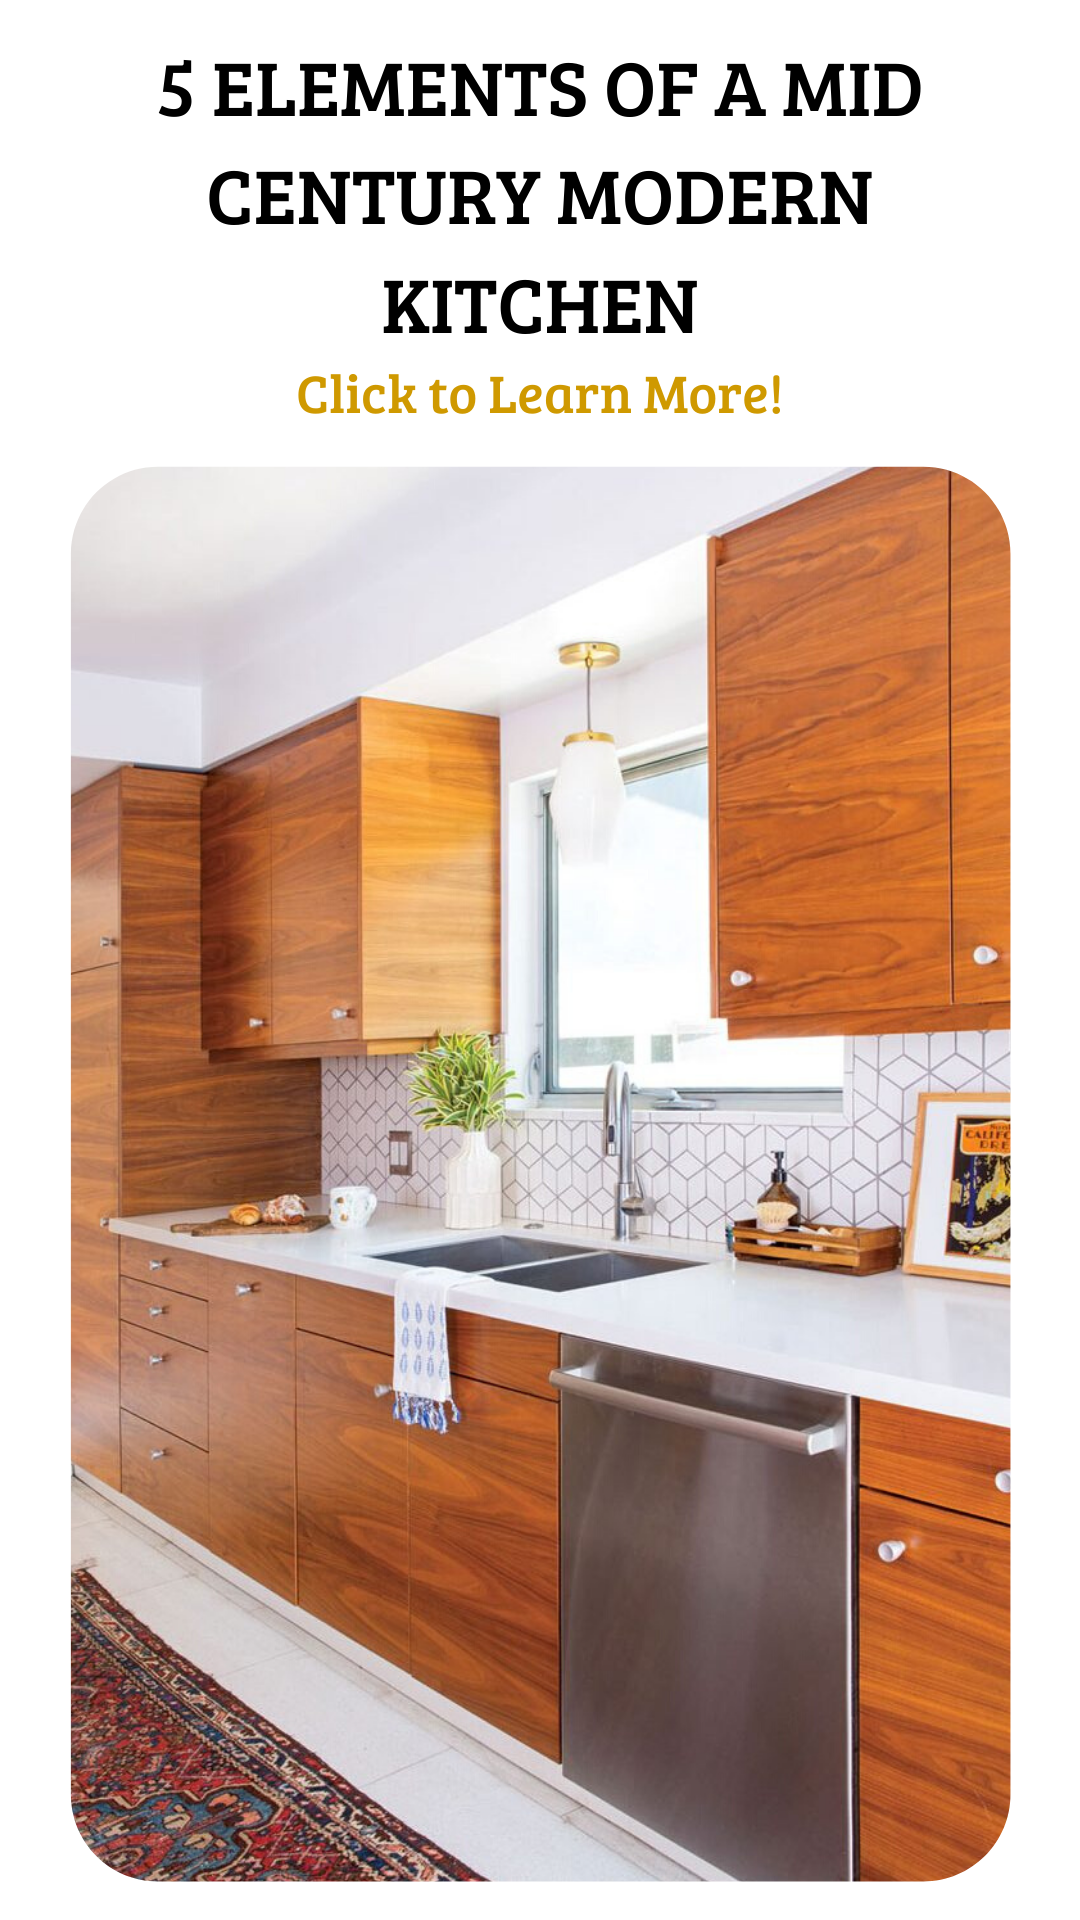 The 5 Elements Of A Mid Century Modern Kitchen Modern Kitchen Remodel Mid Century Modern Kitchen Design Mid Century Modern Kitchen